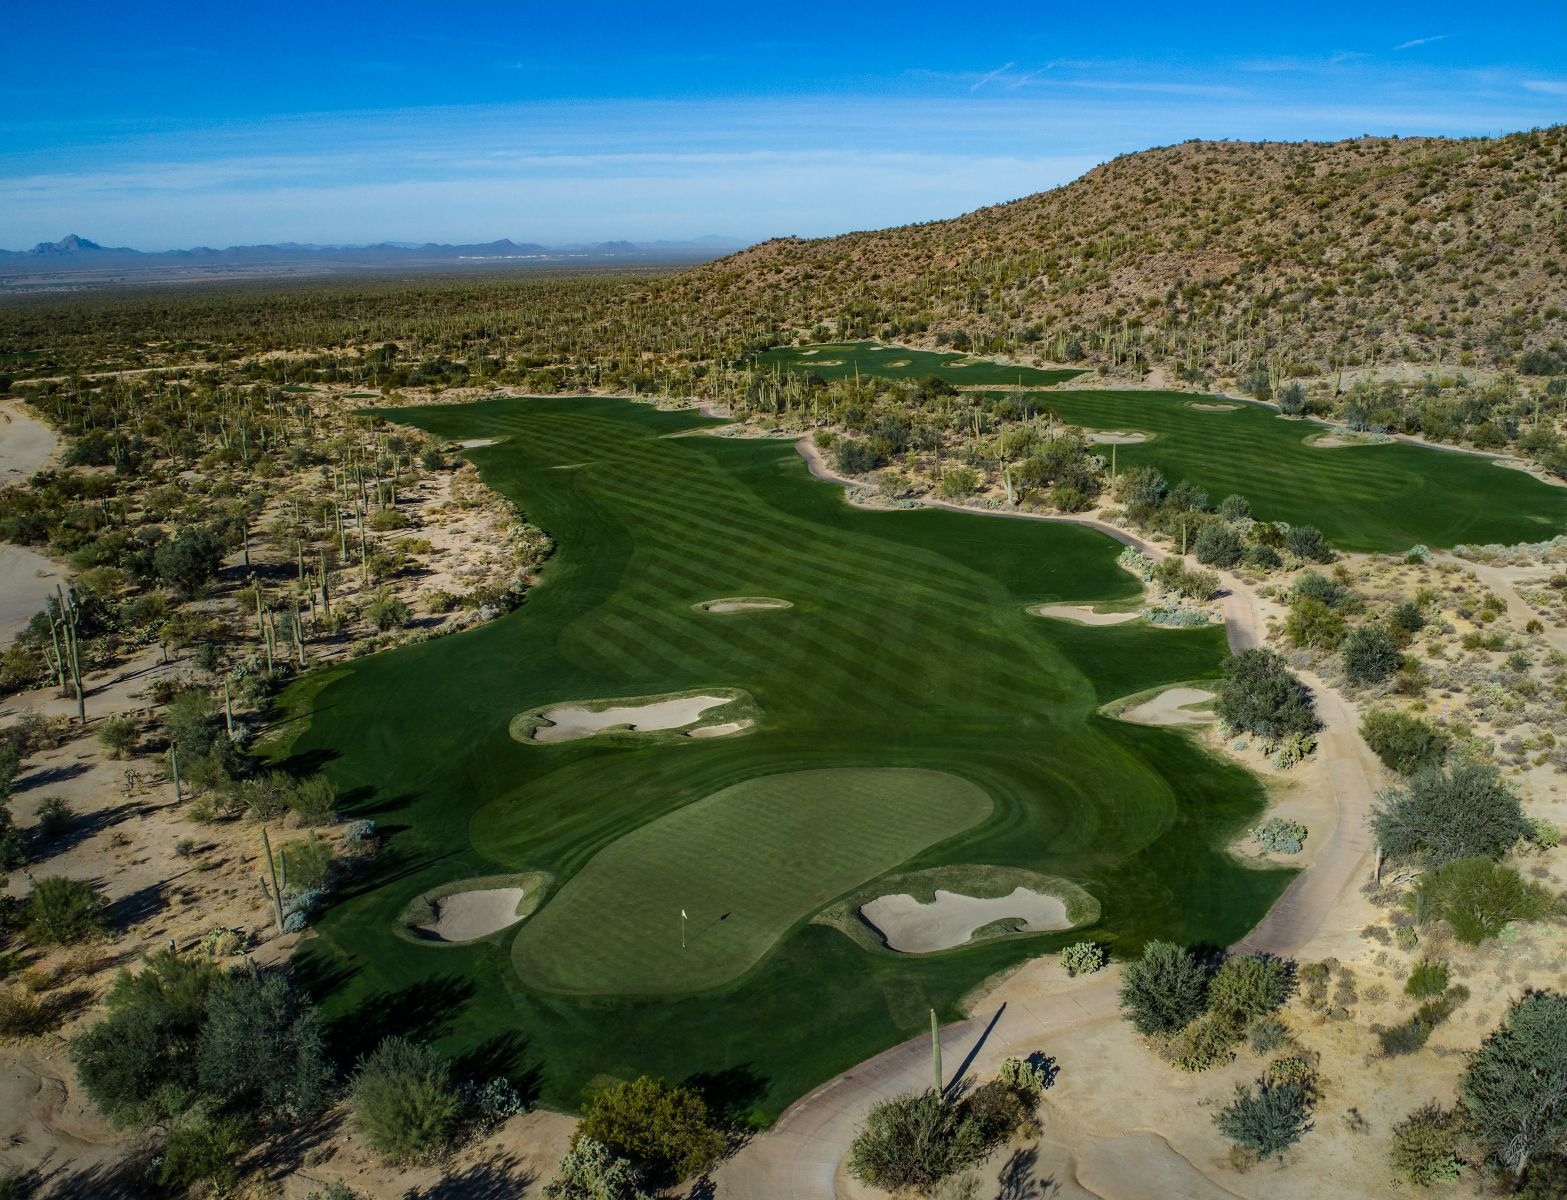 Aerial view of hole 4 on the Tortolita course